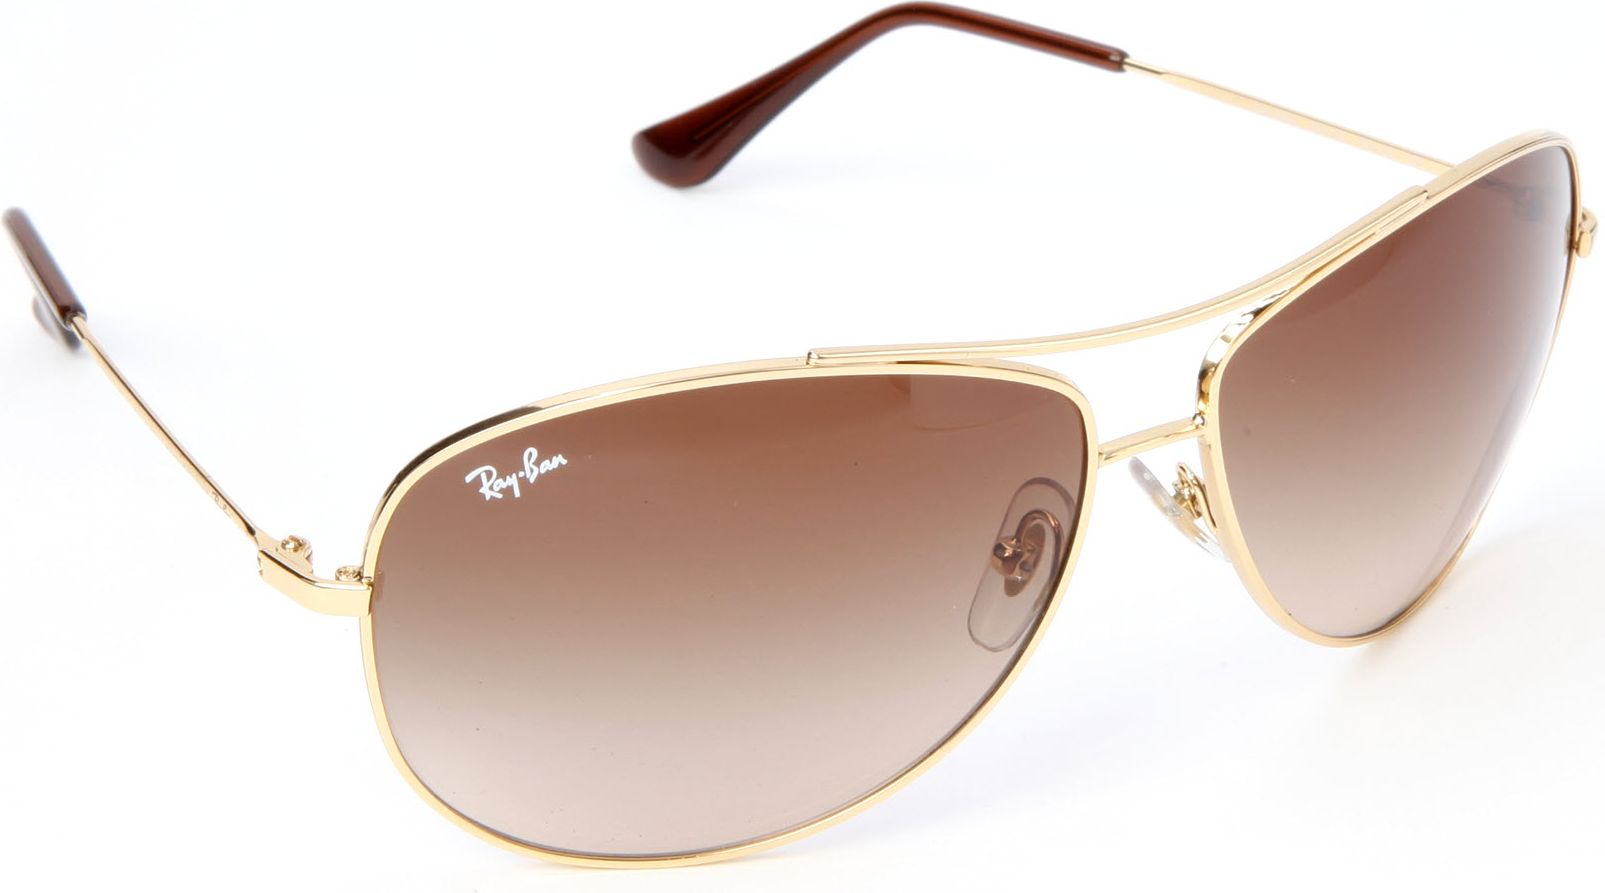 4896d77305 Ray Ban Women Sunglasses Sale